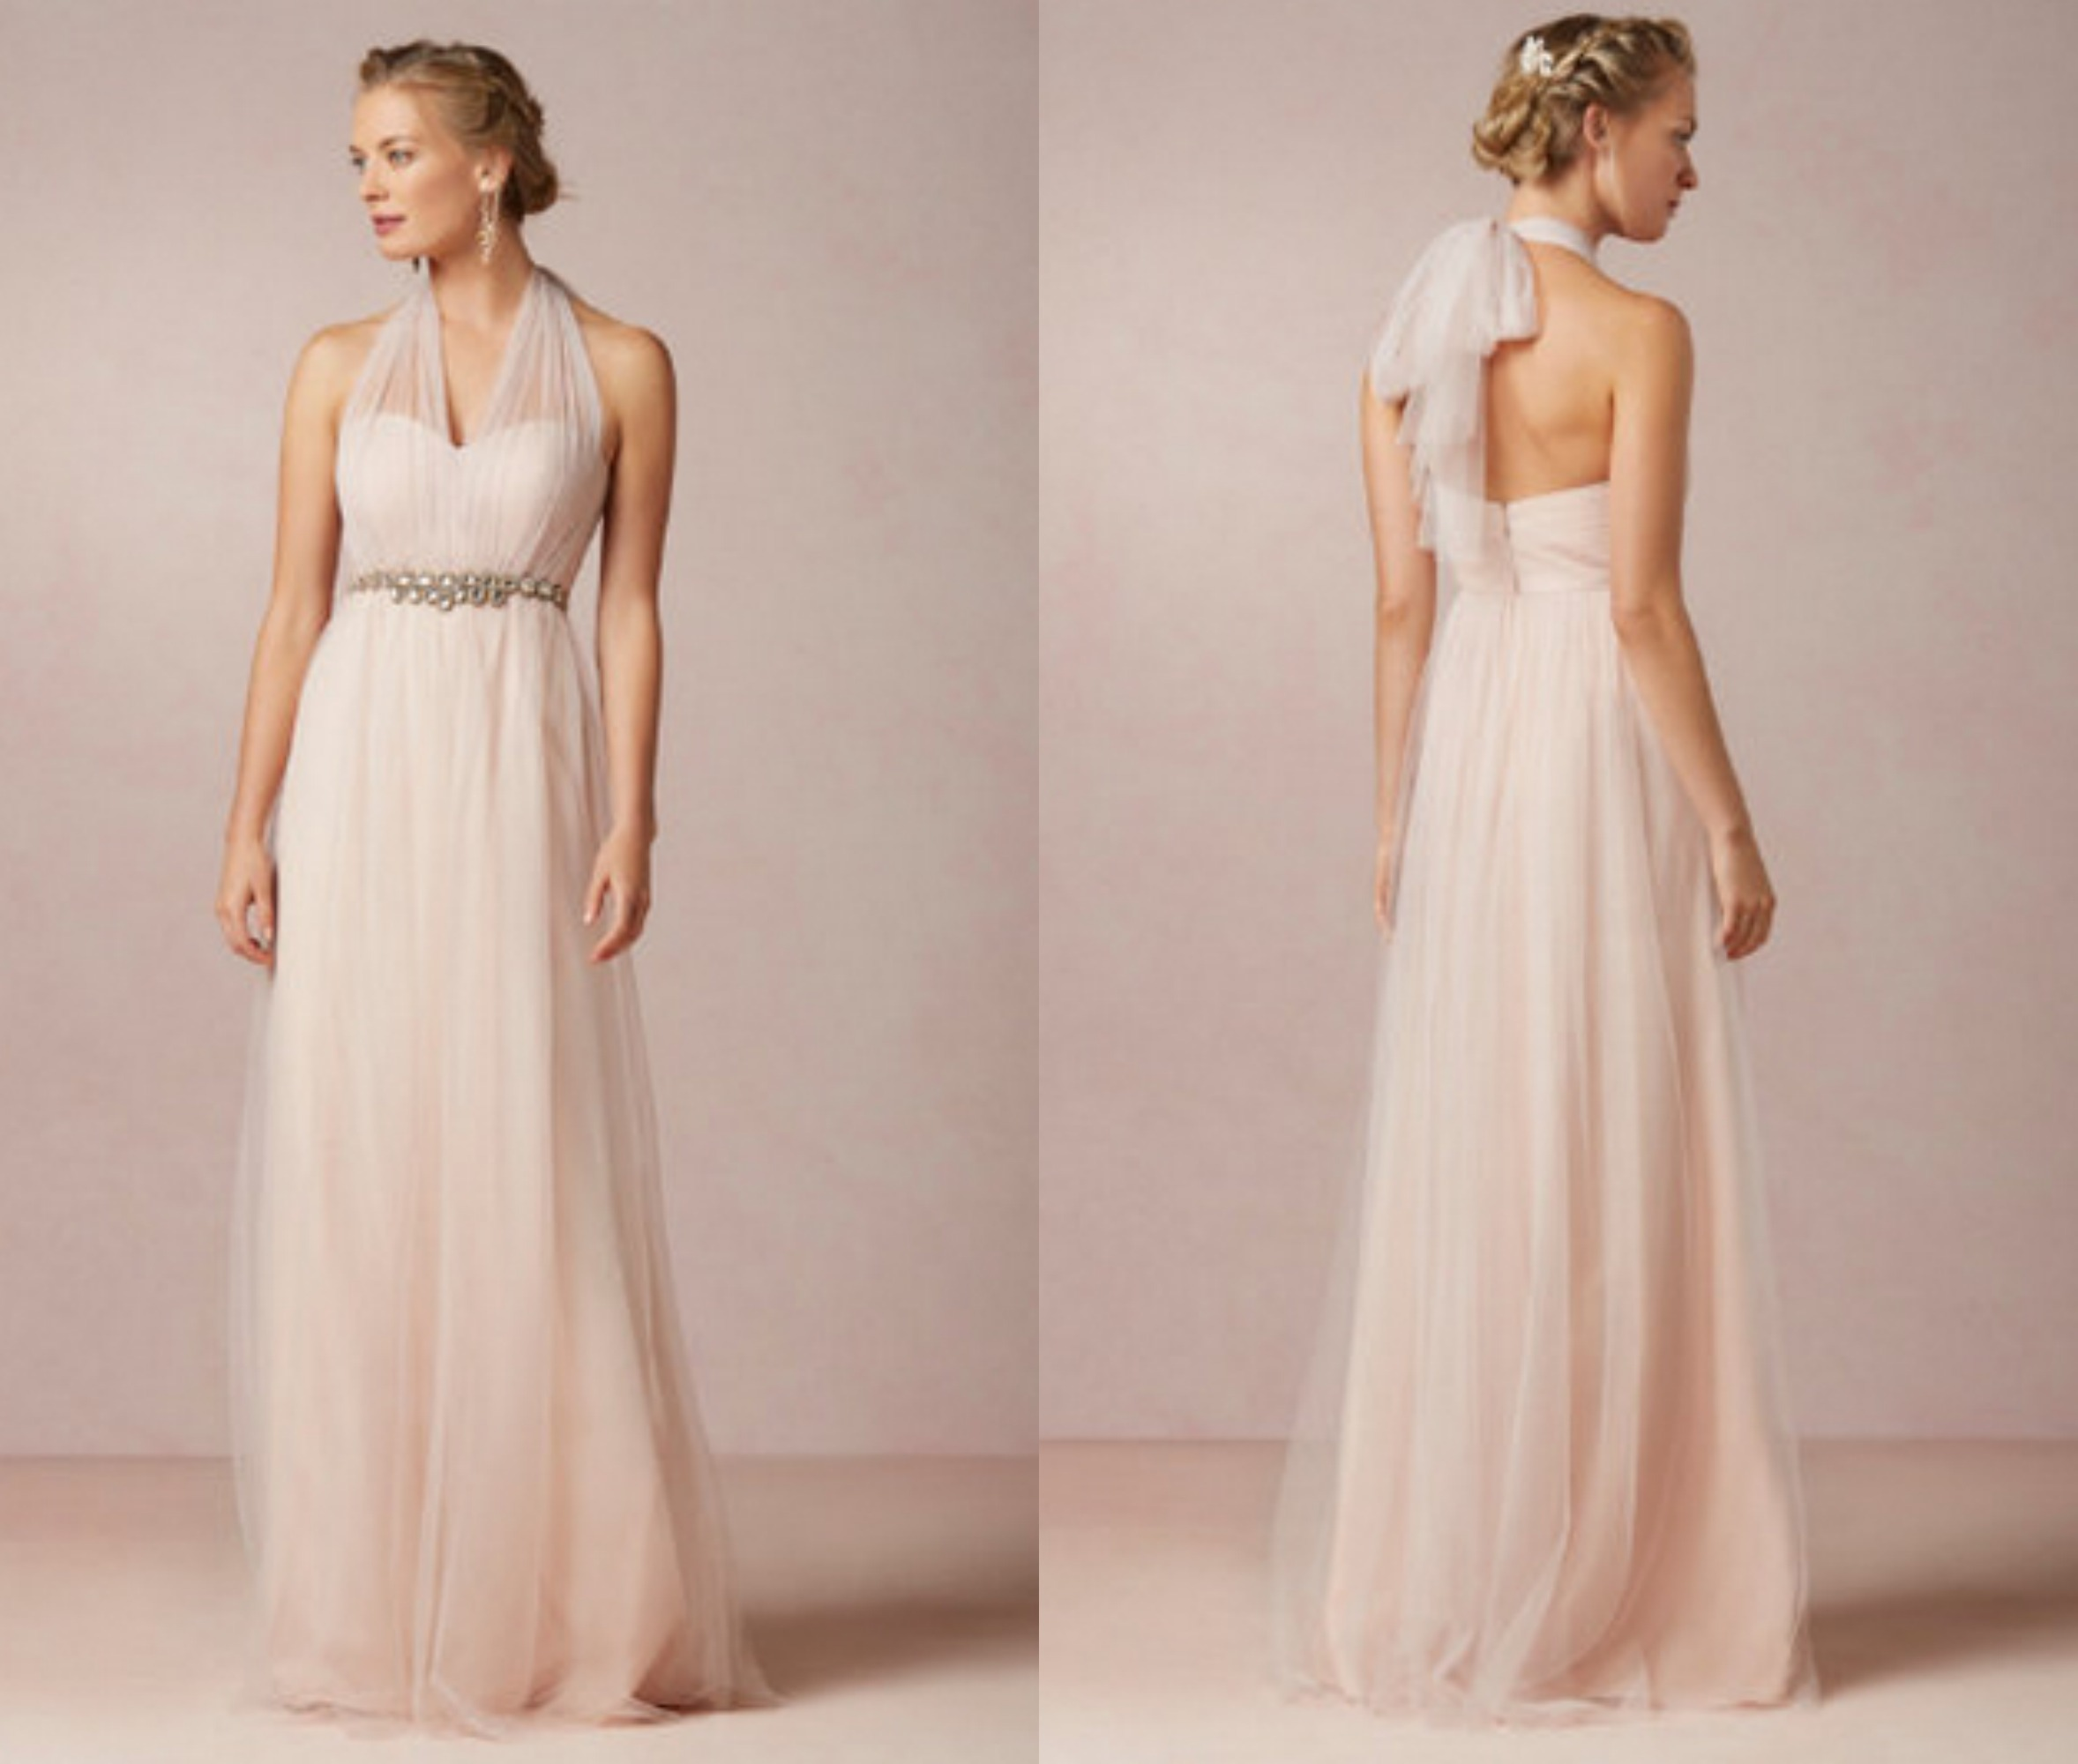 Bridesmaid Dresses: Blush Bridesmaid Dresses